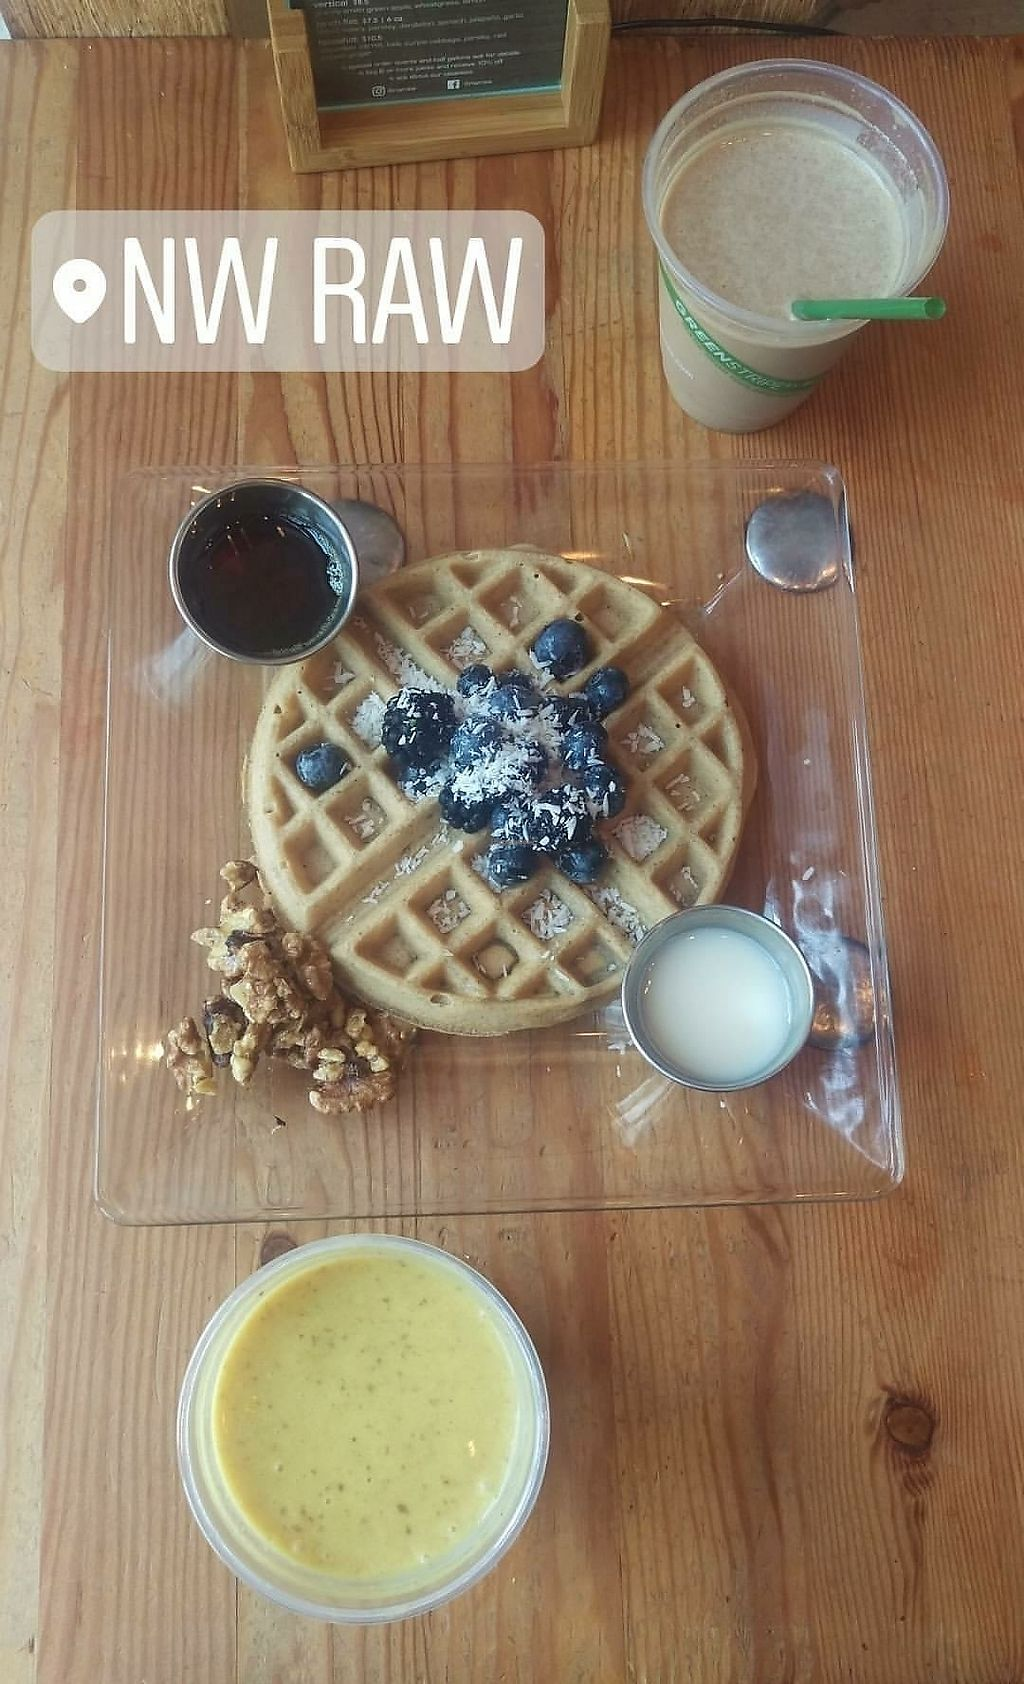 """Photo of NW Raw  by <a href=""""/members/profile/Naturalia"""">Naturalia</a> <br/>waffle and smoothies! <br/> August 27, 2017  - <a href='/contact/abuse/image/46101/297910'>Report</a>"""